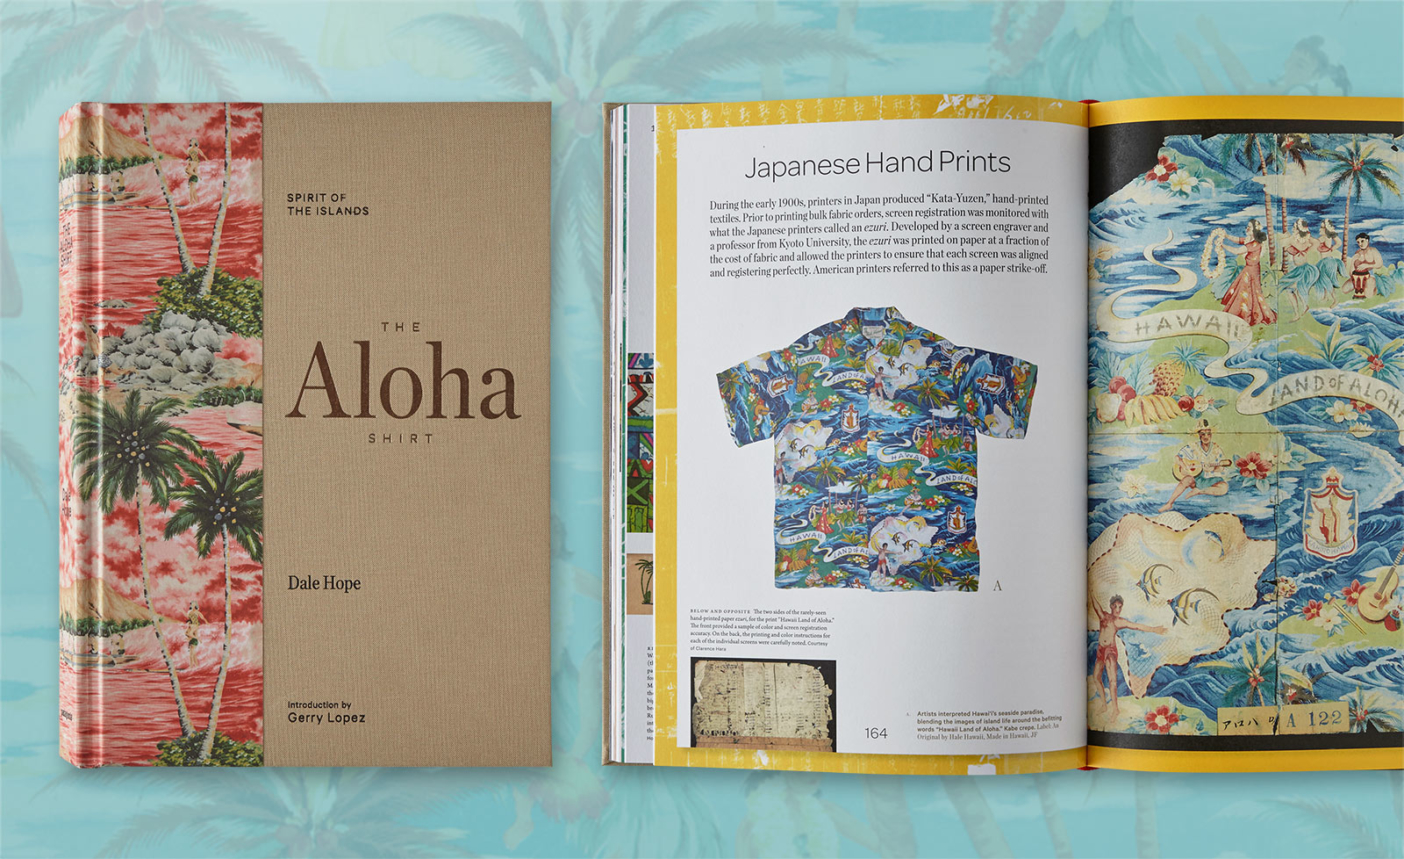 The Aloha Shirt: Spirit of the Islands